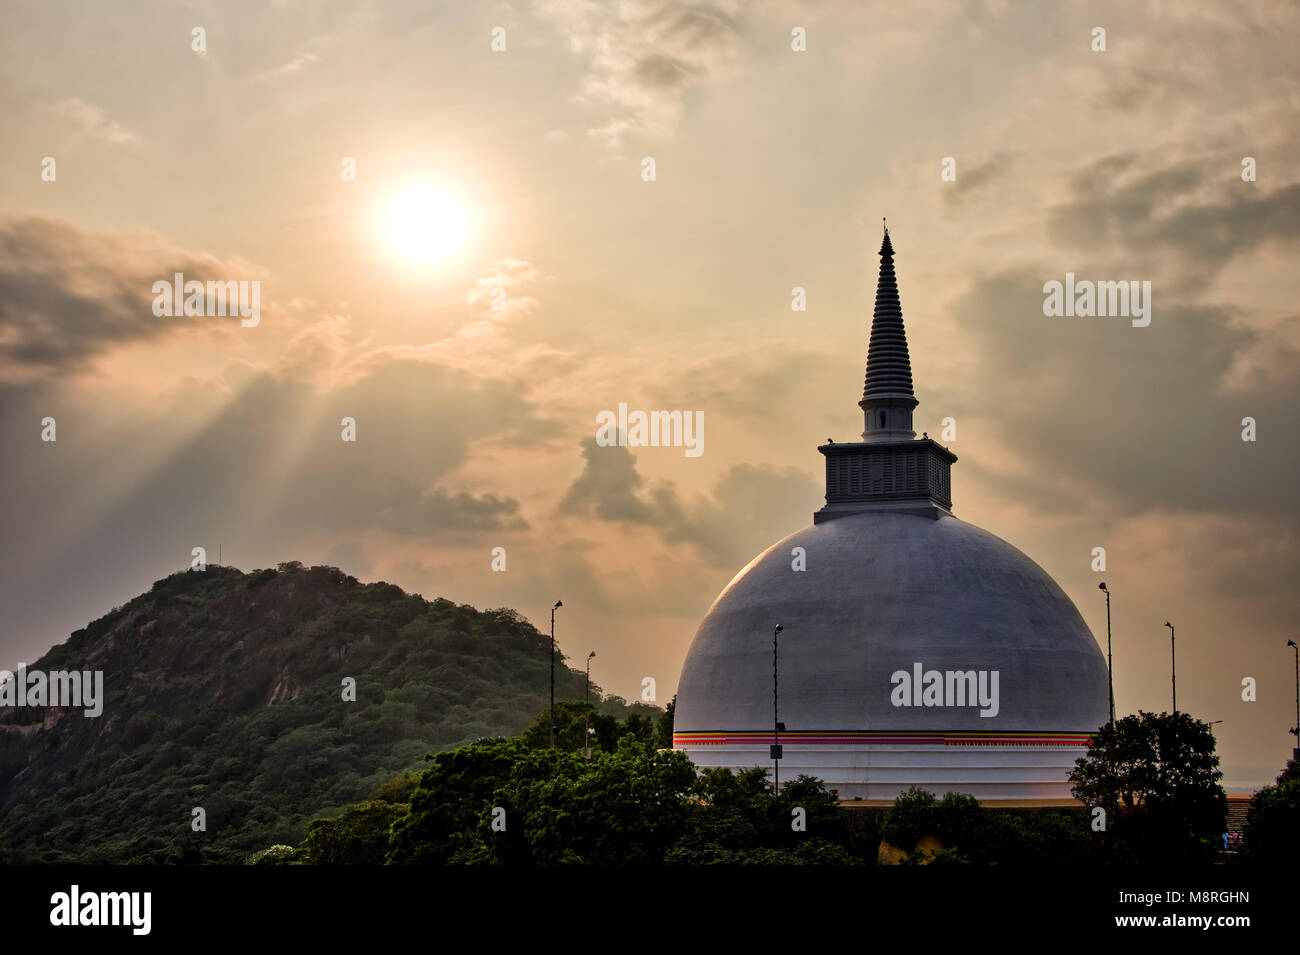 An HDR imgae of the Maha Stupa aka Maha Seya on top of Mihintale Hill in Sri Lanka Stock Photo